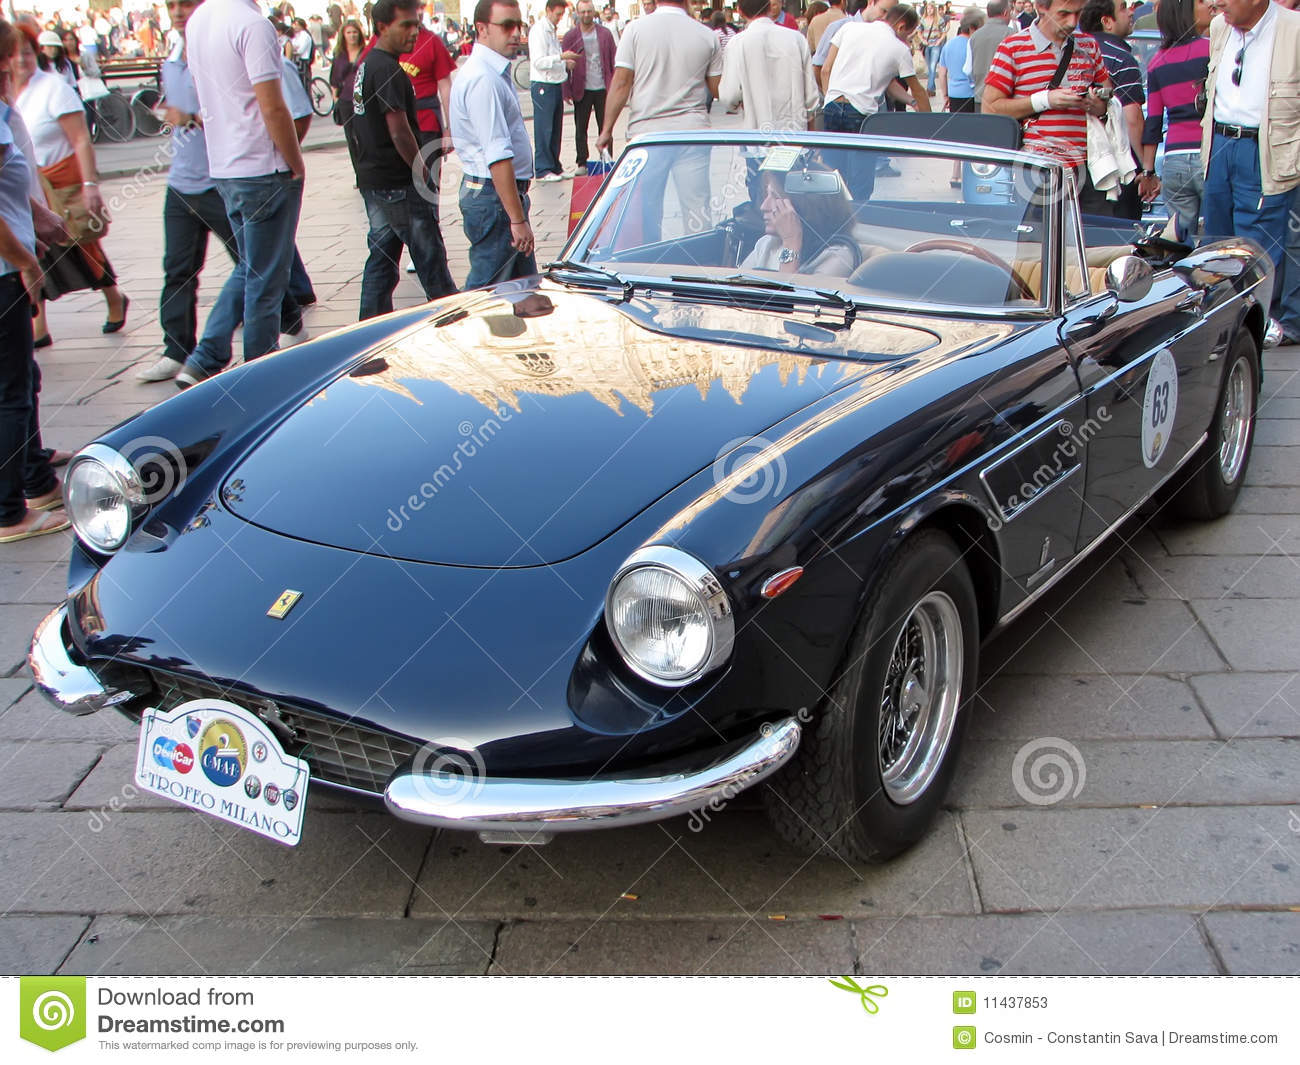 Vintage sport coupe car at Trofeo Milano vintage cars gathering, 03